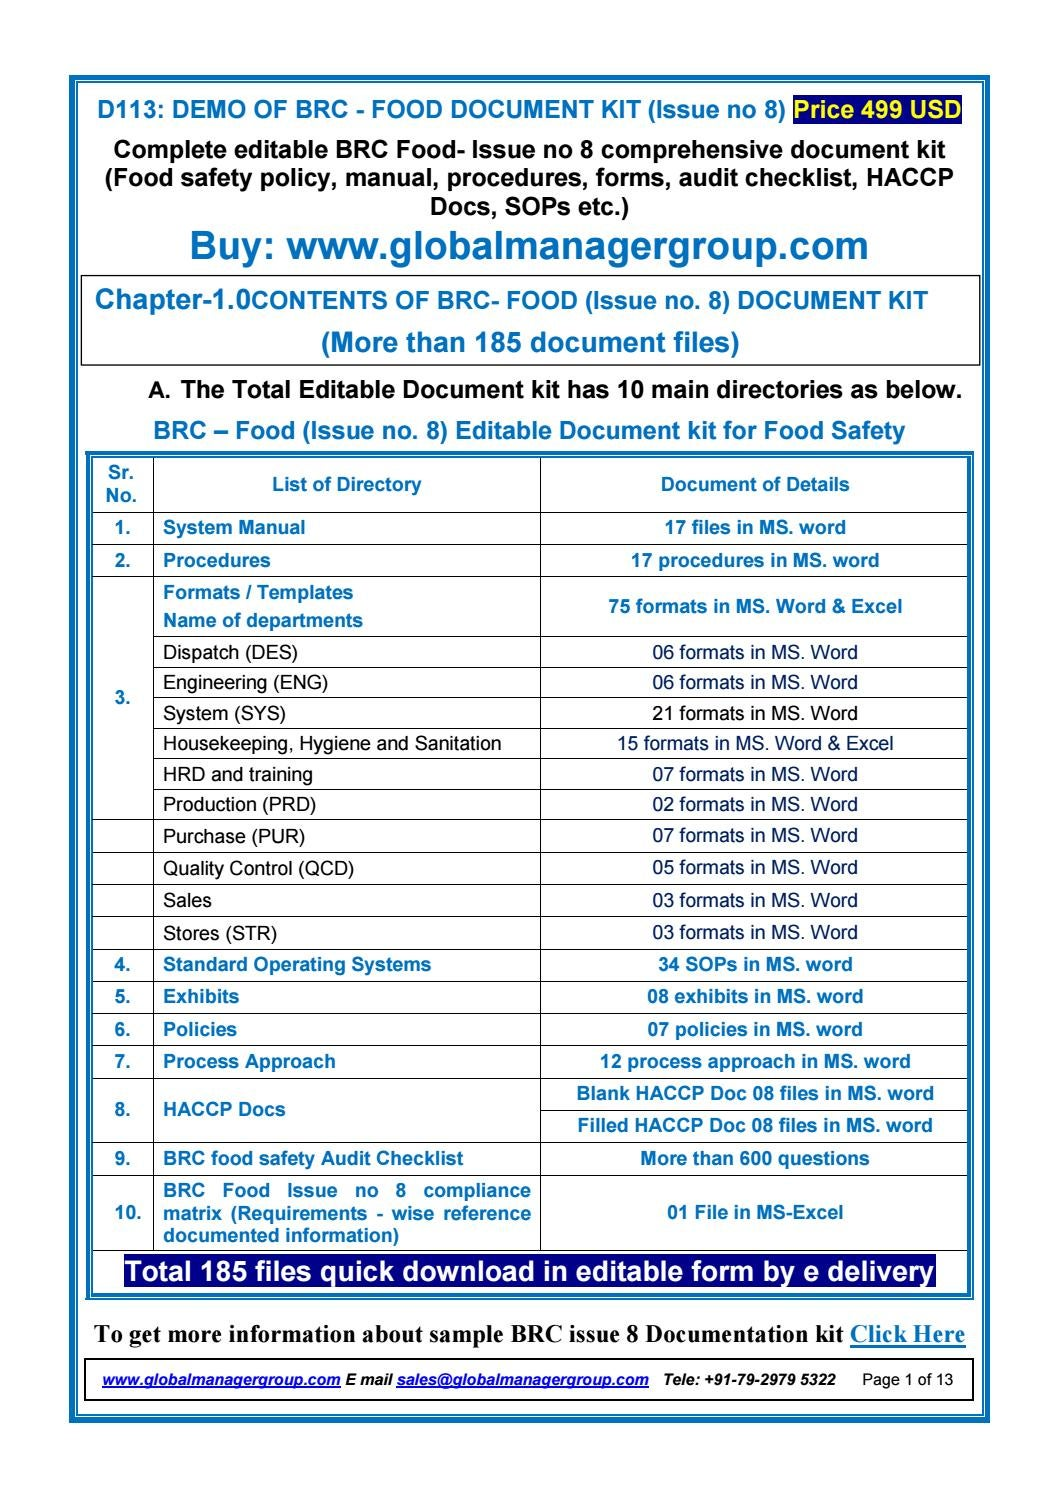 Required BRC Food Issue 8 Documents by Global Manager Group